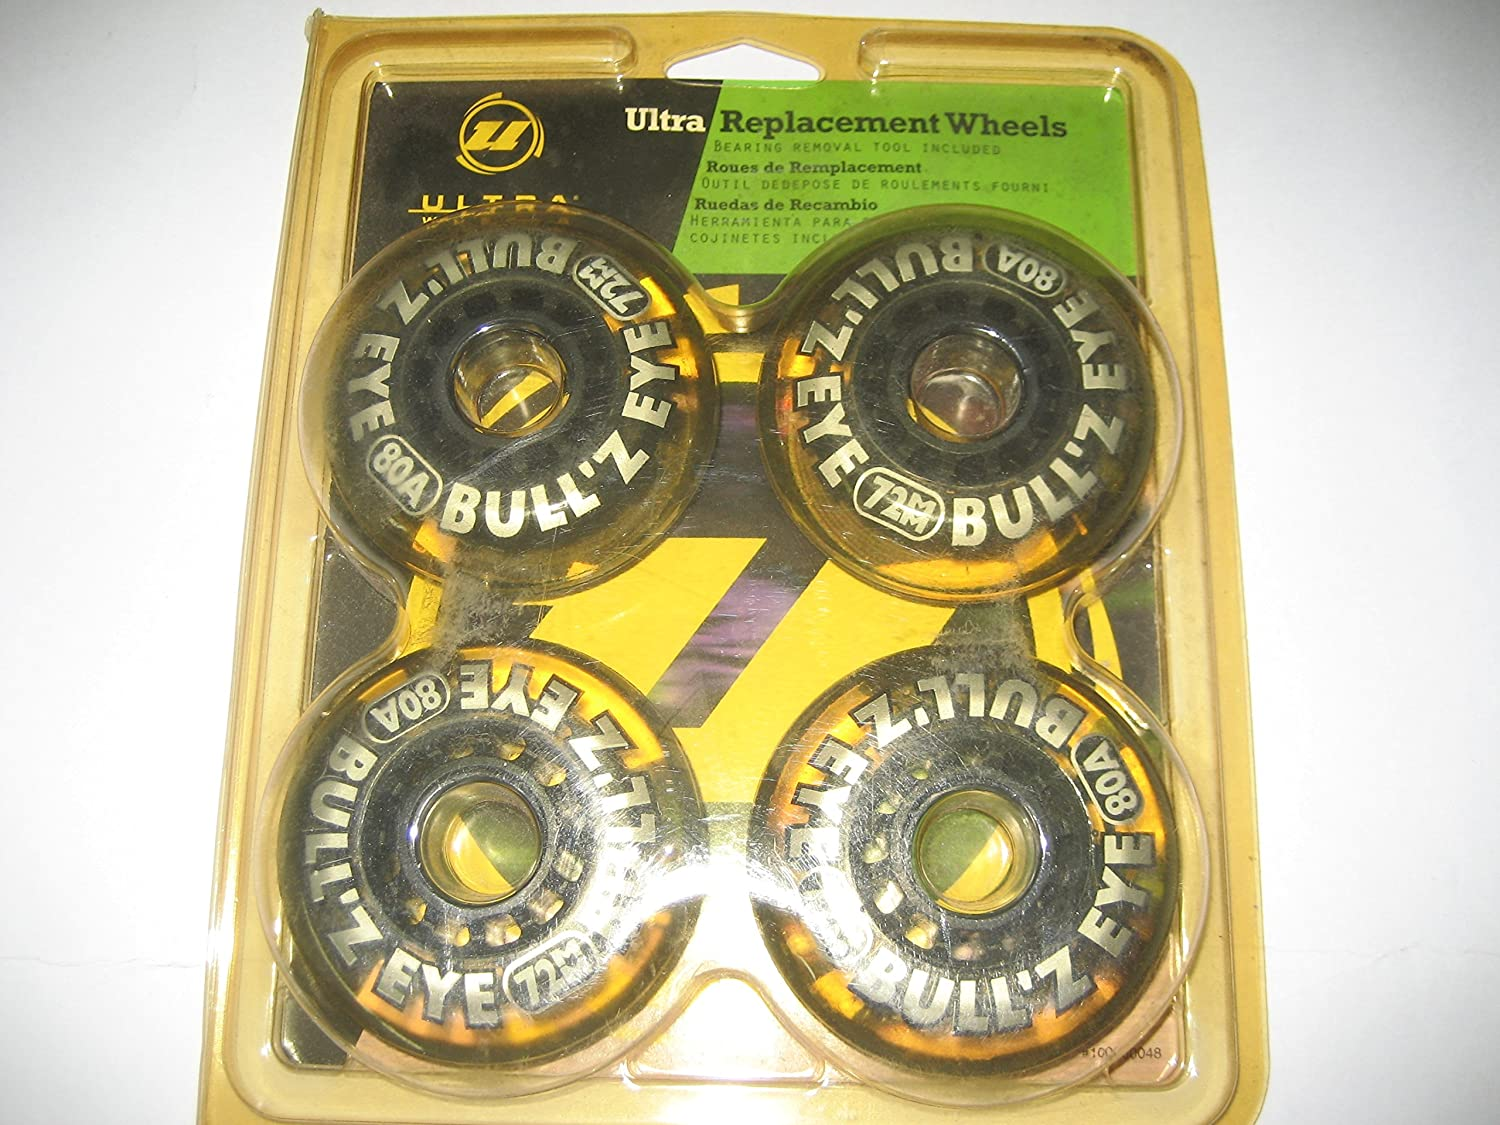 Amazon.com : Ulrta Replacement Wheels Bulls Eye 72mm 4 Pack : Sports & Outdoors